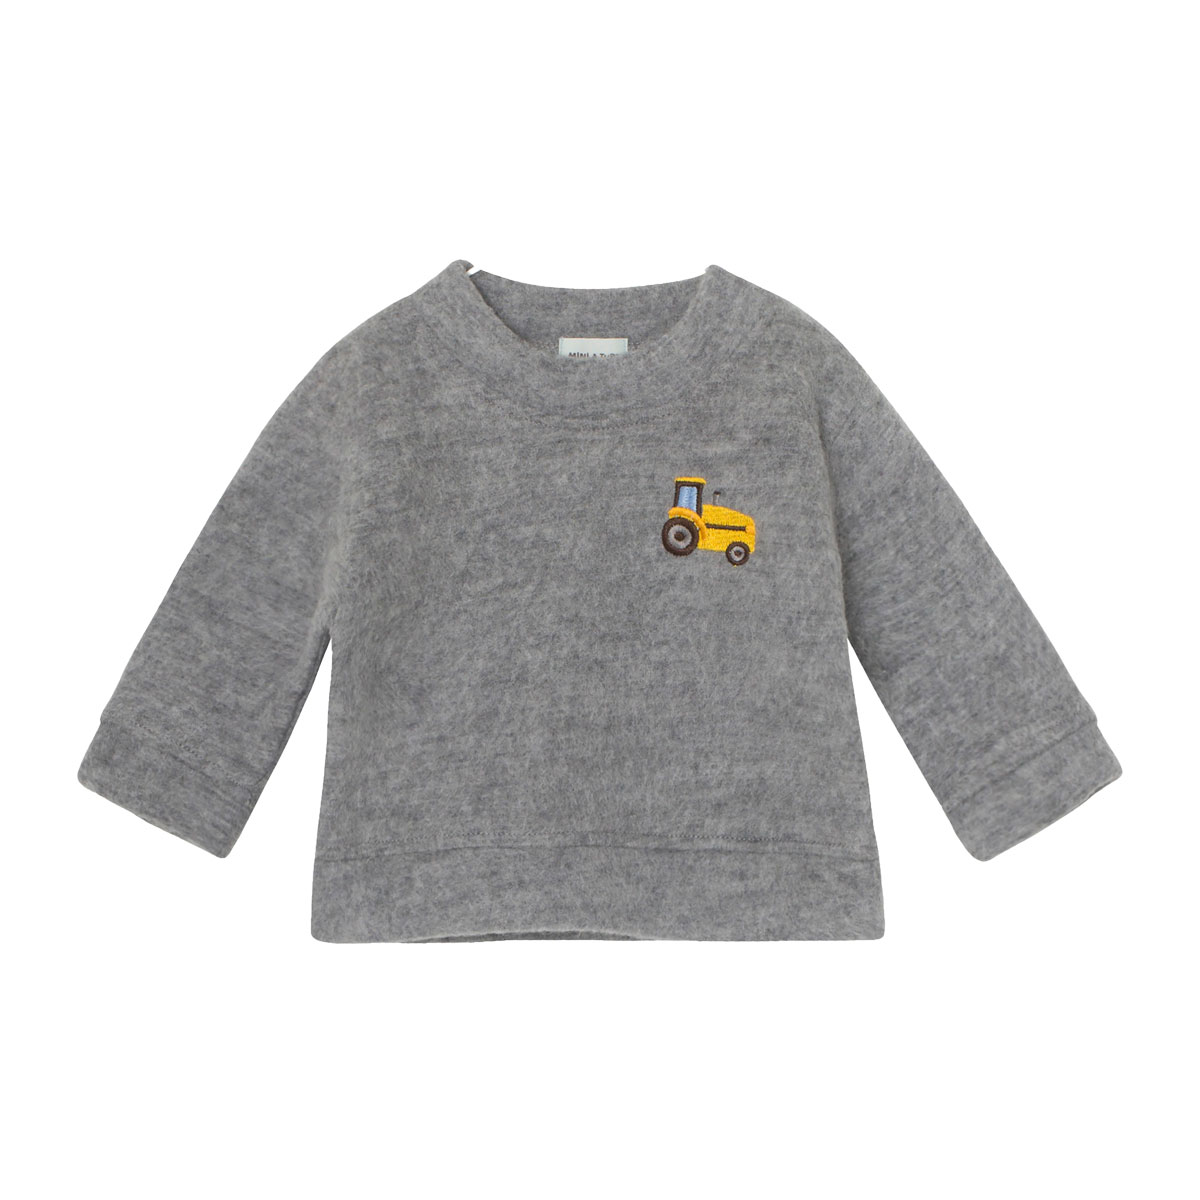 MiniATure Jannic Sweater in Grey with tractor